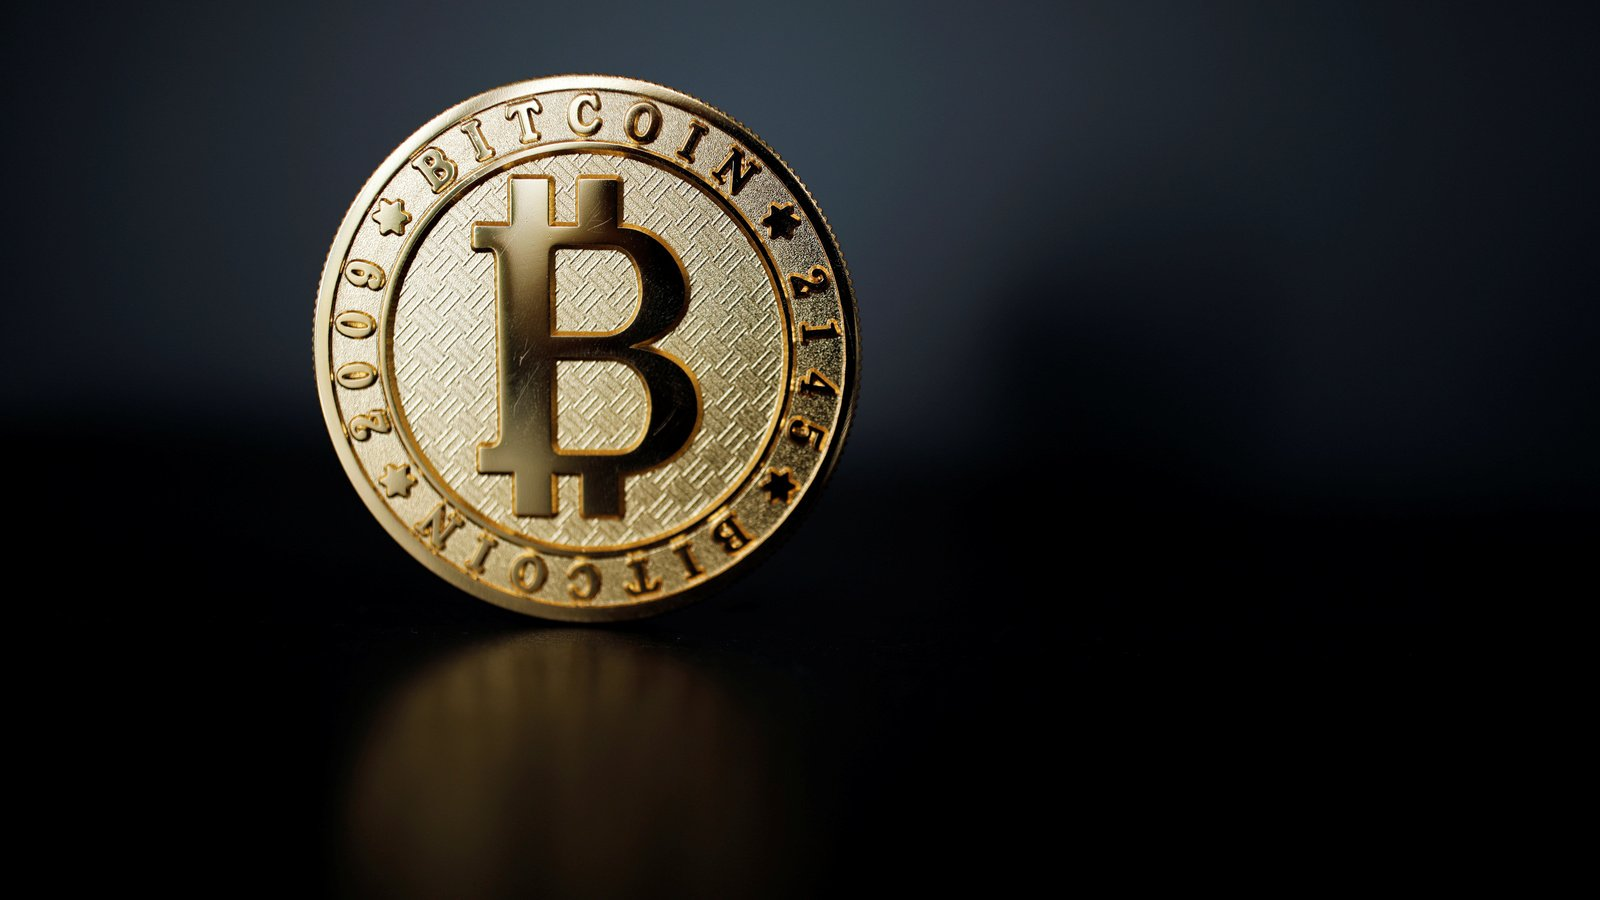 Bitcoin scales $51,000 for the first time as crypto fever continues